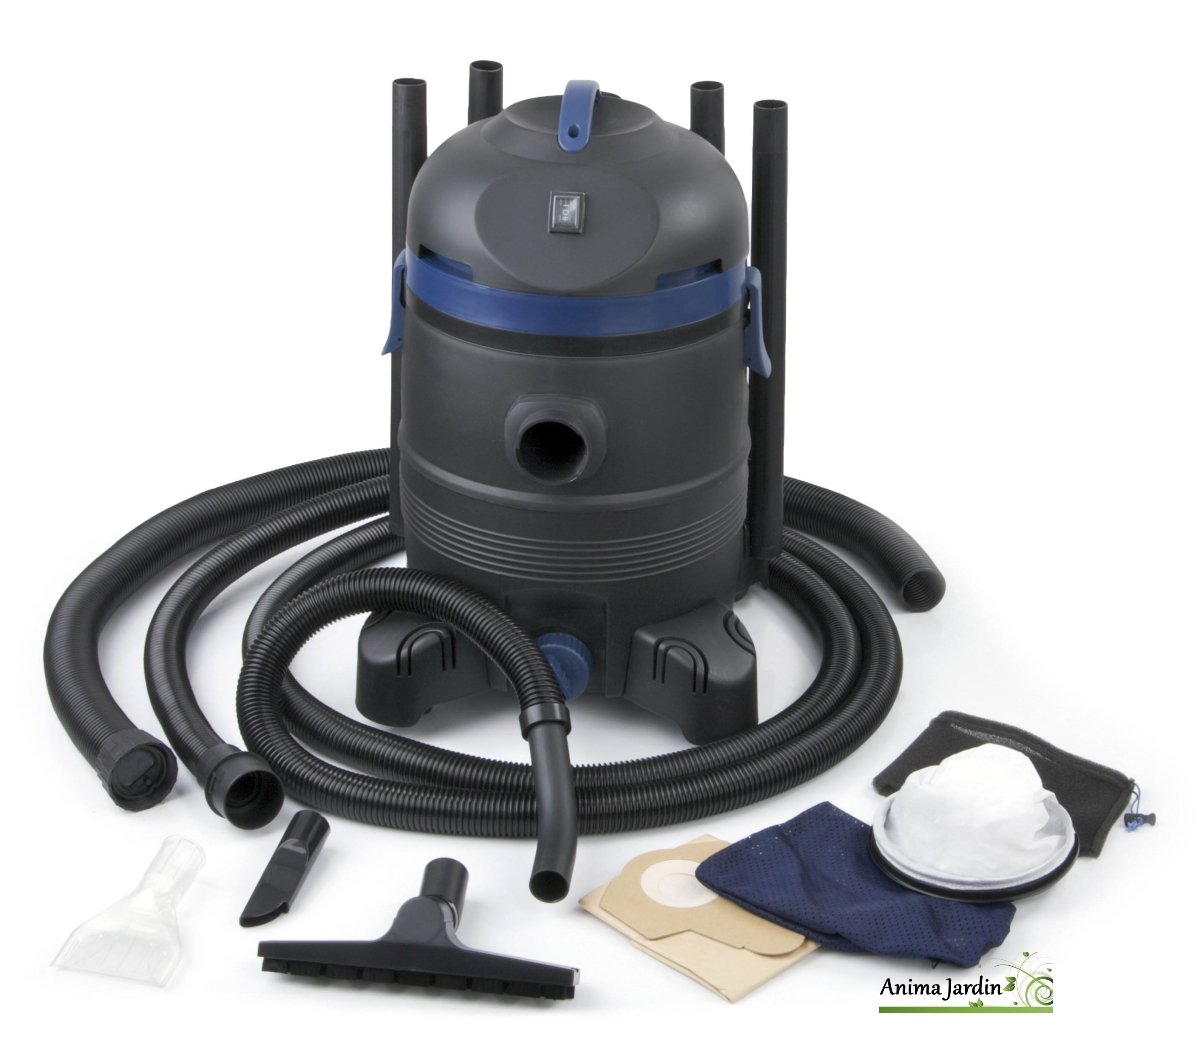 aspirateur pour bassin vacupro cleaner maxi ubbink achat vente pas cher. Black Bedroom Furniture Sets. Home Design Ideas